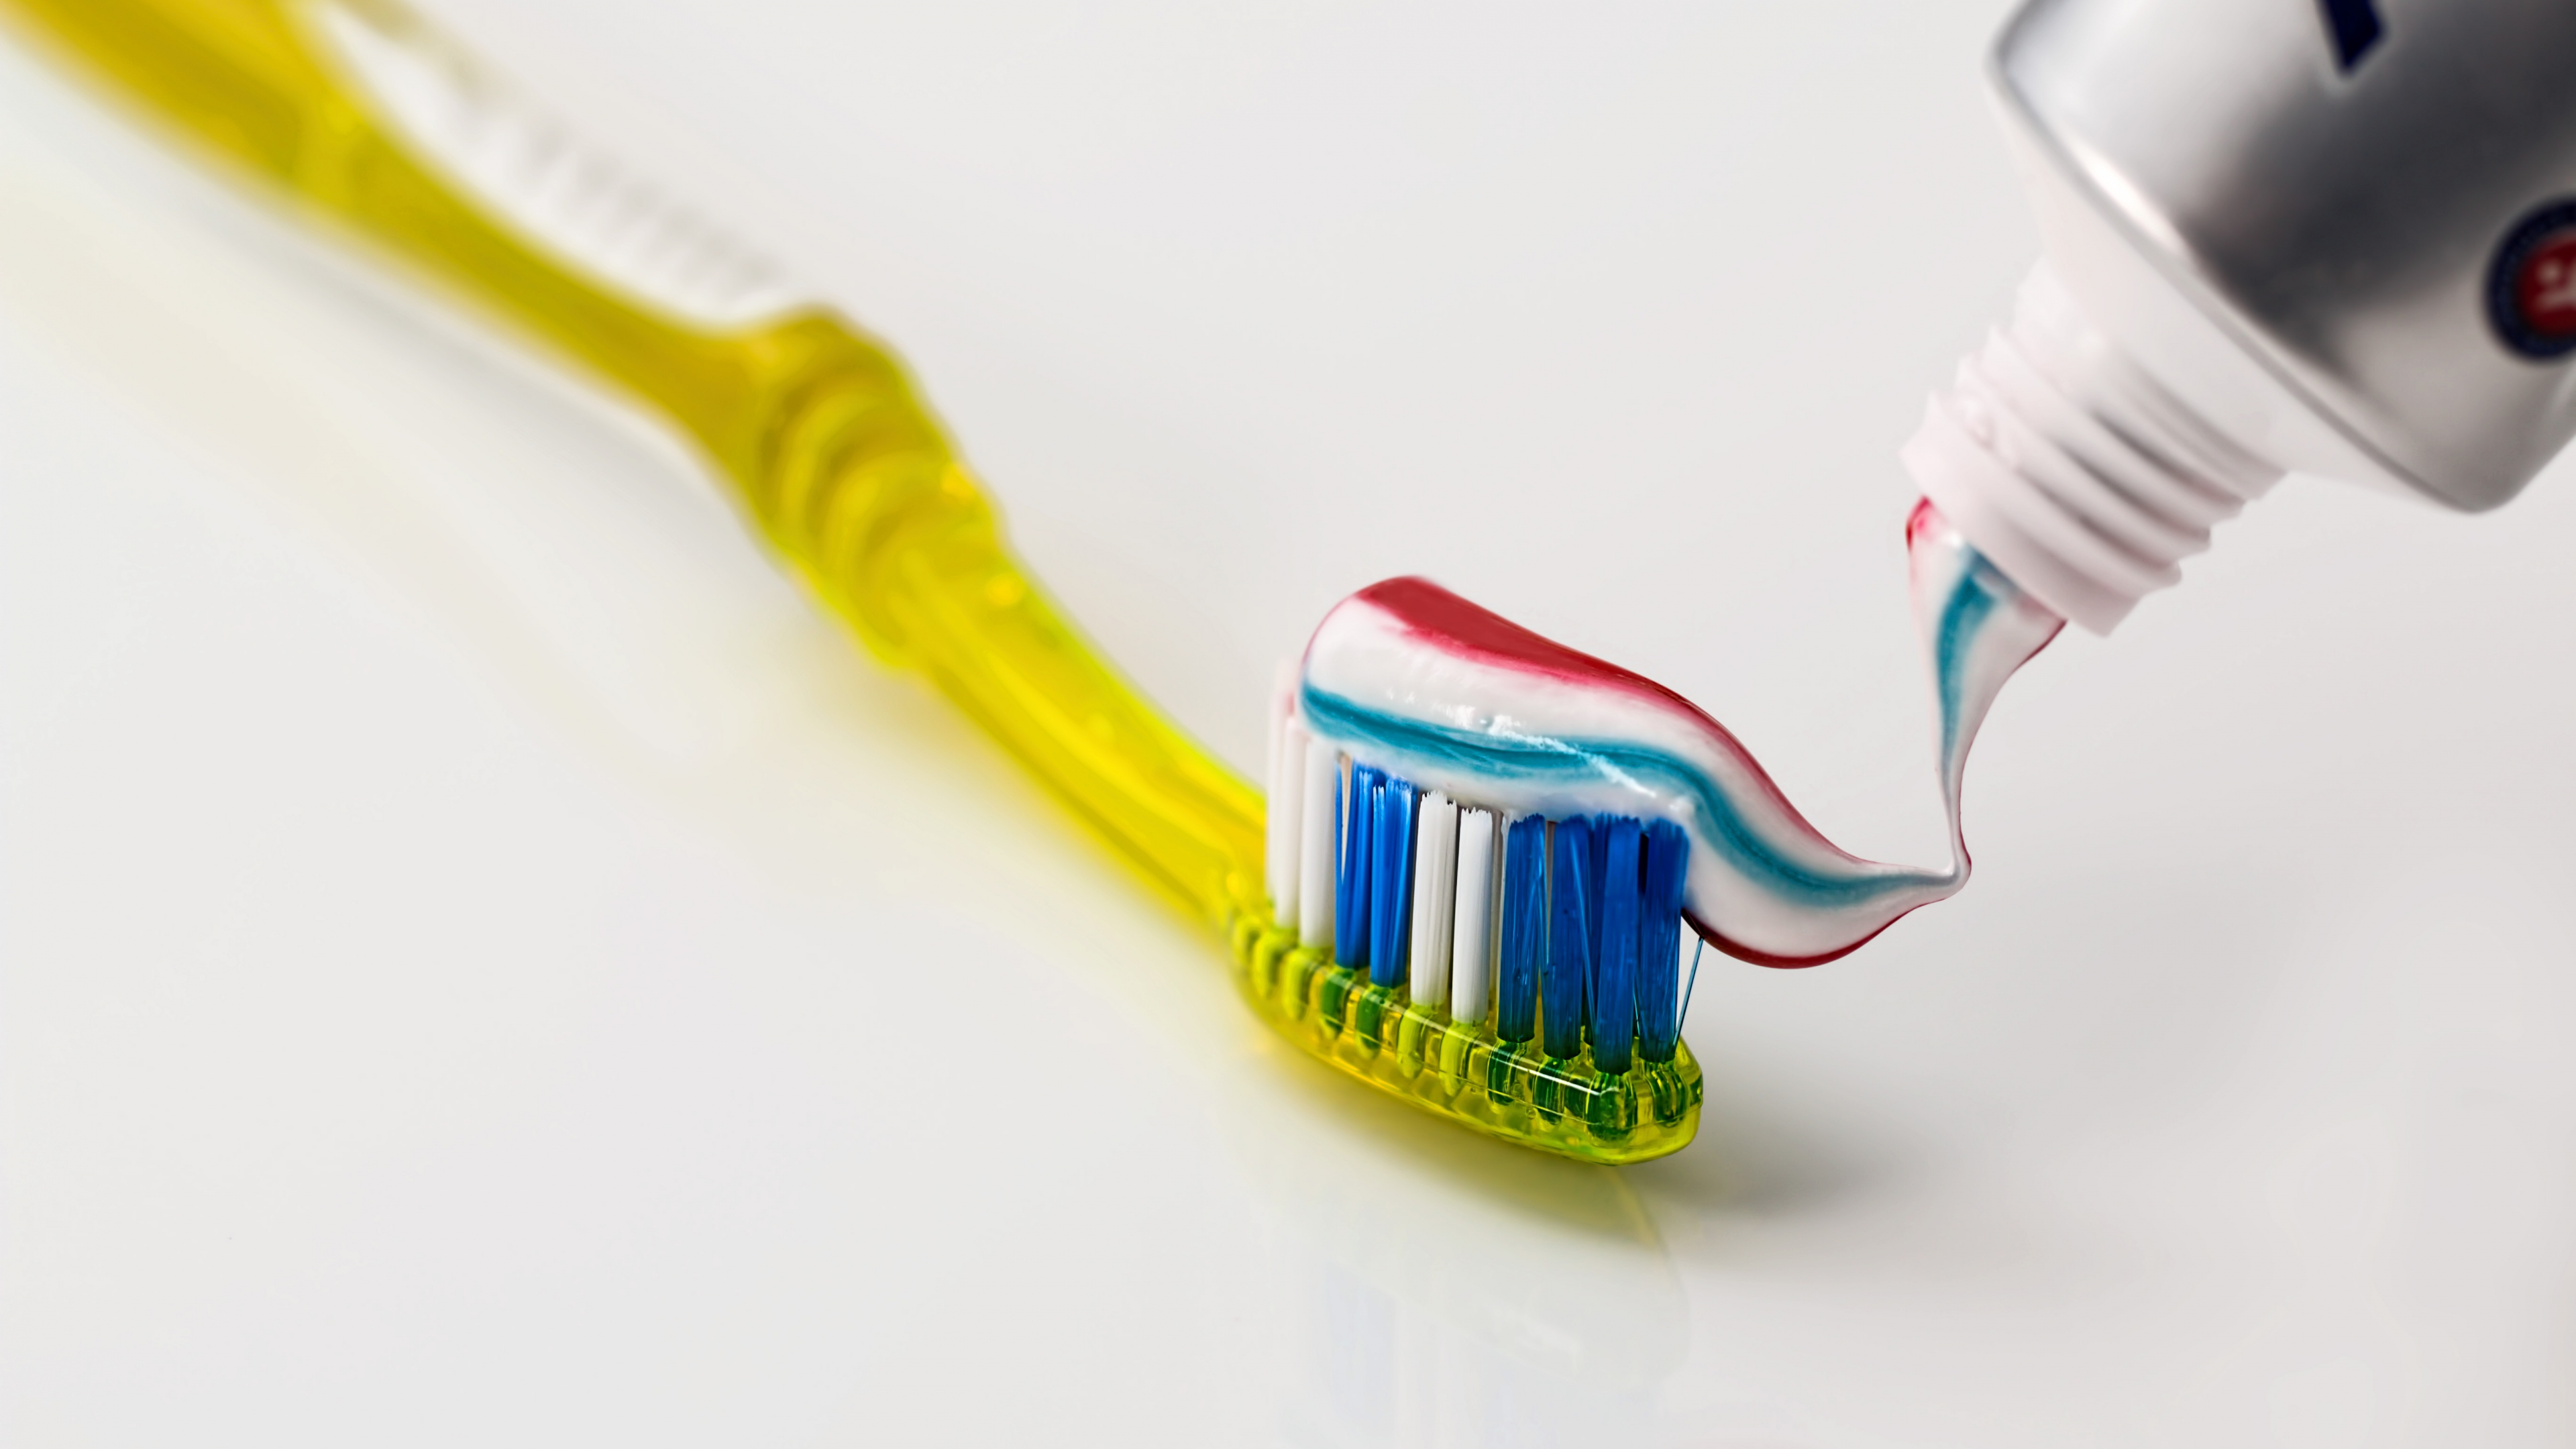 toothbrush and toothpaste widescreen hd wallpaper 62564